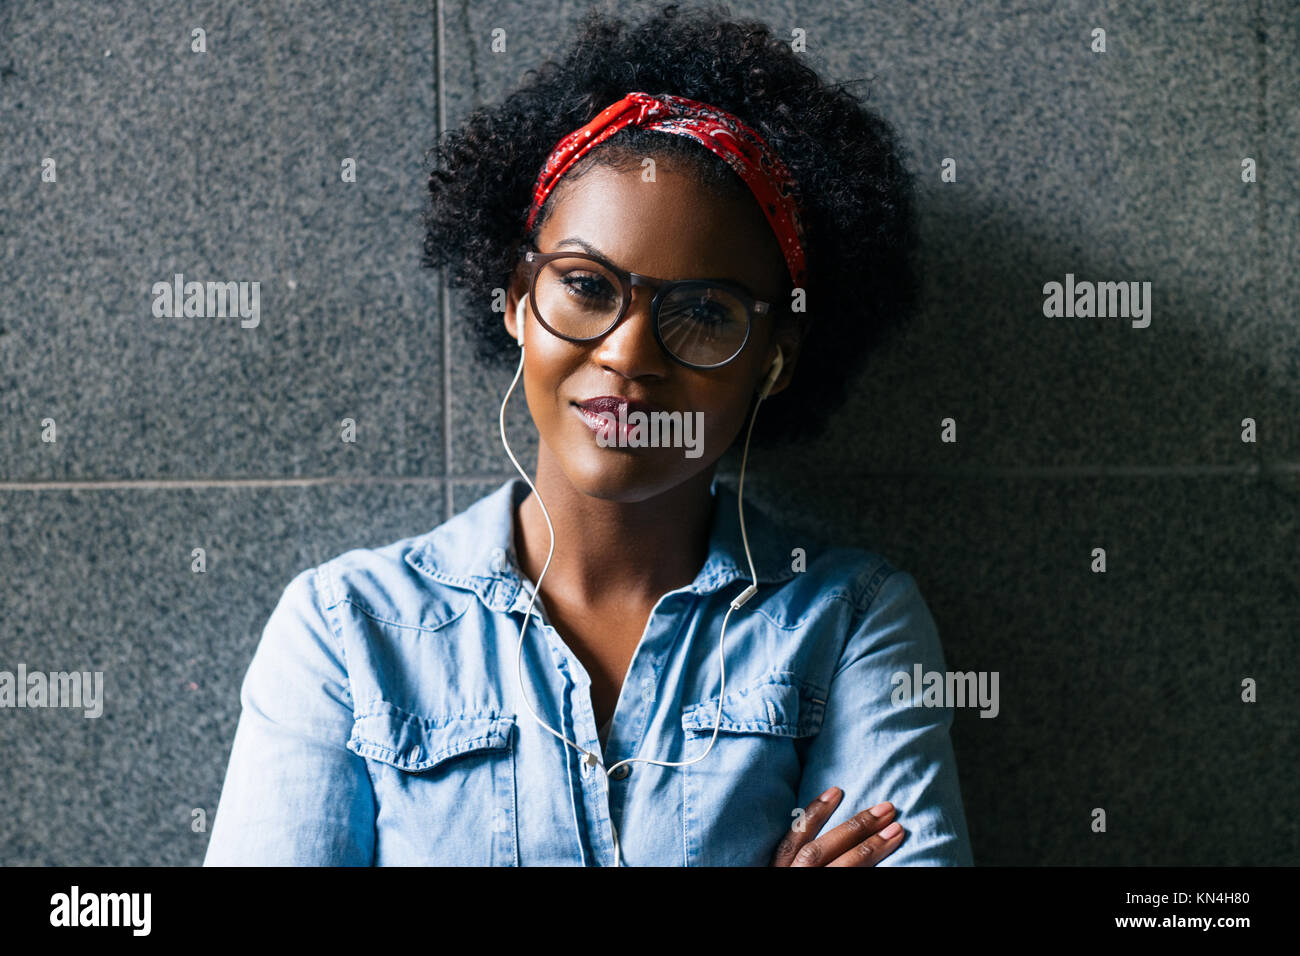 Stylishly dressed young African woman wearing glasses standing confidently with her arms crossed against a wall Stock Photo